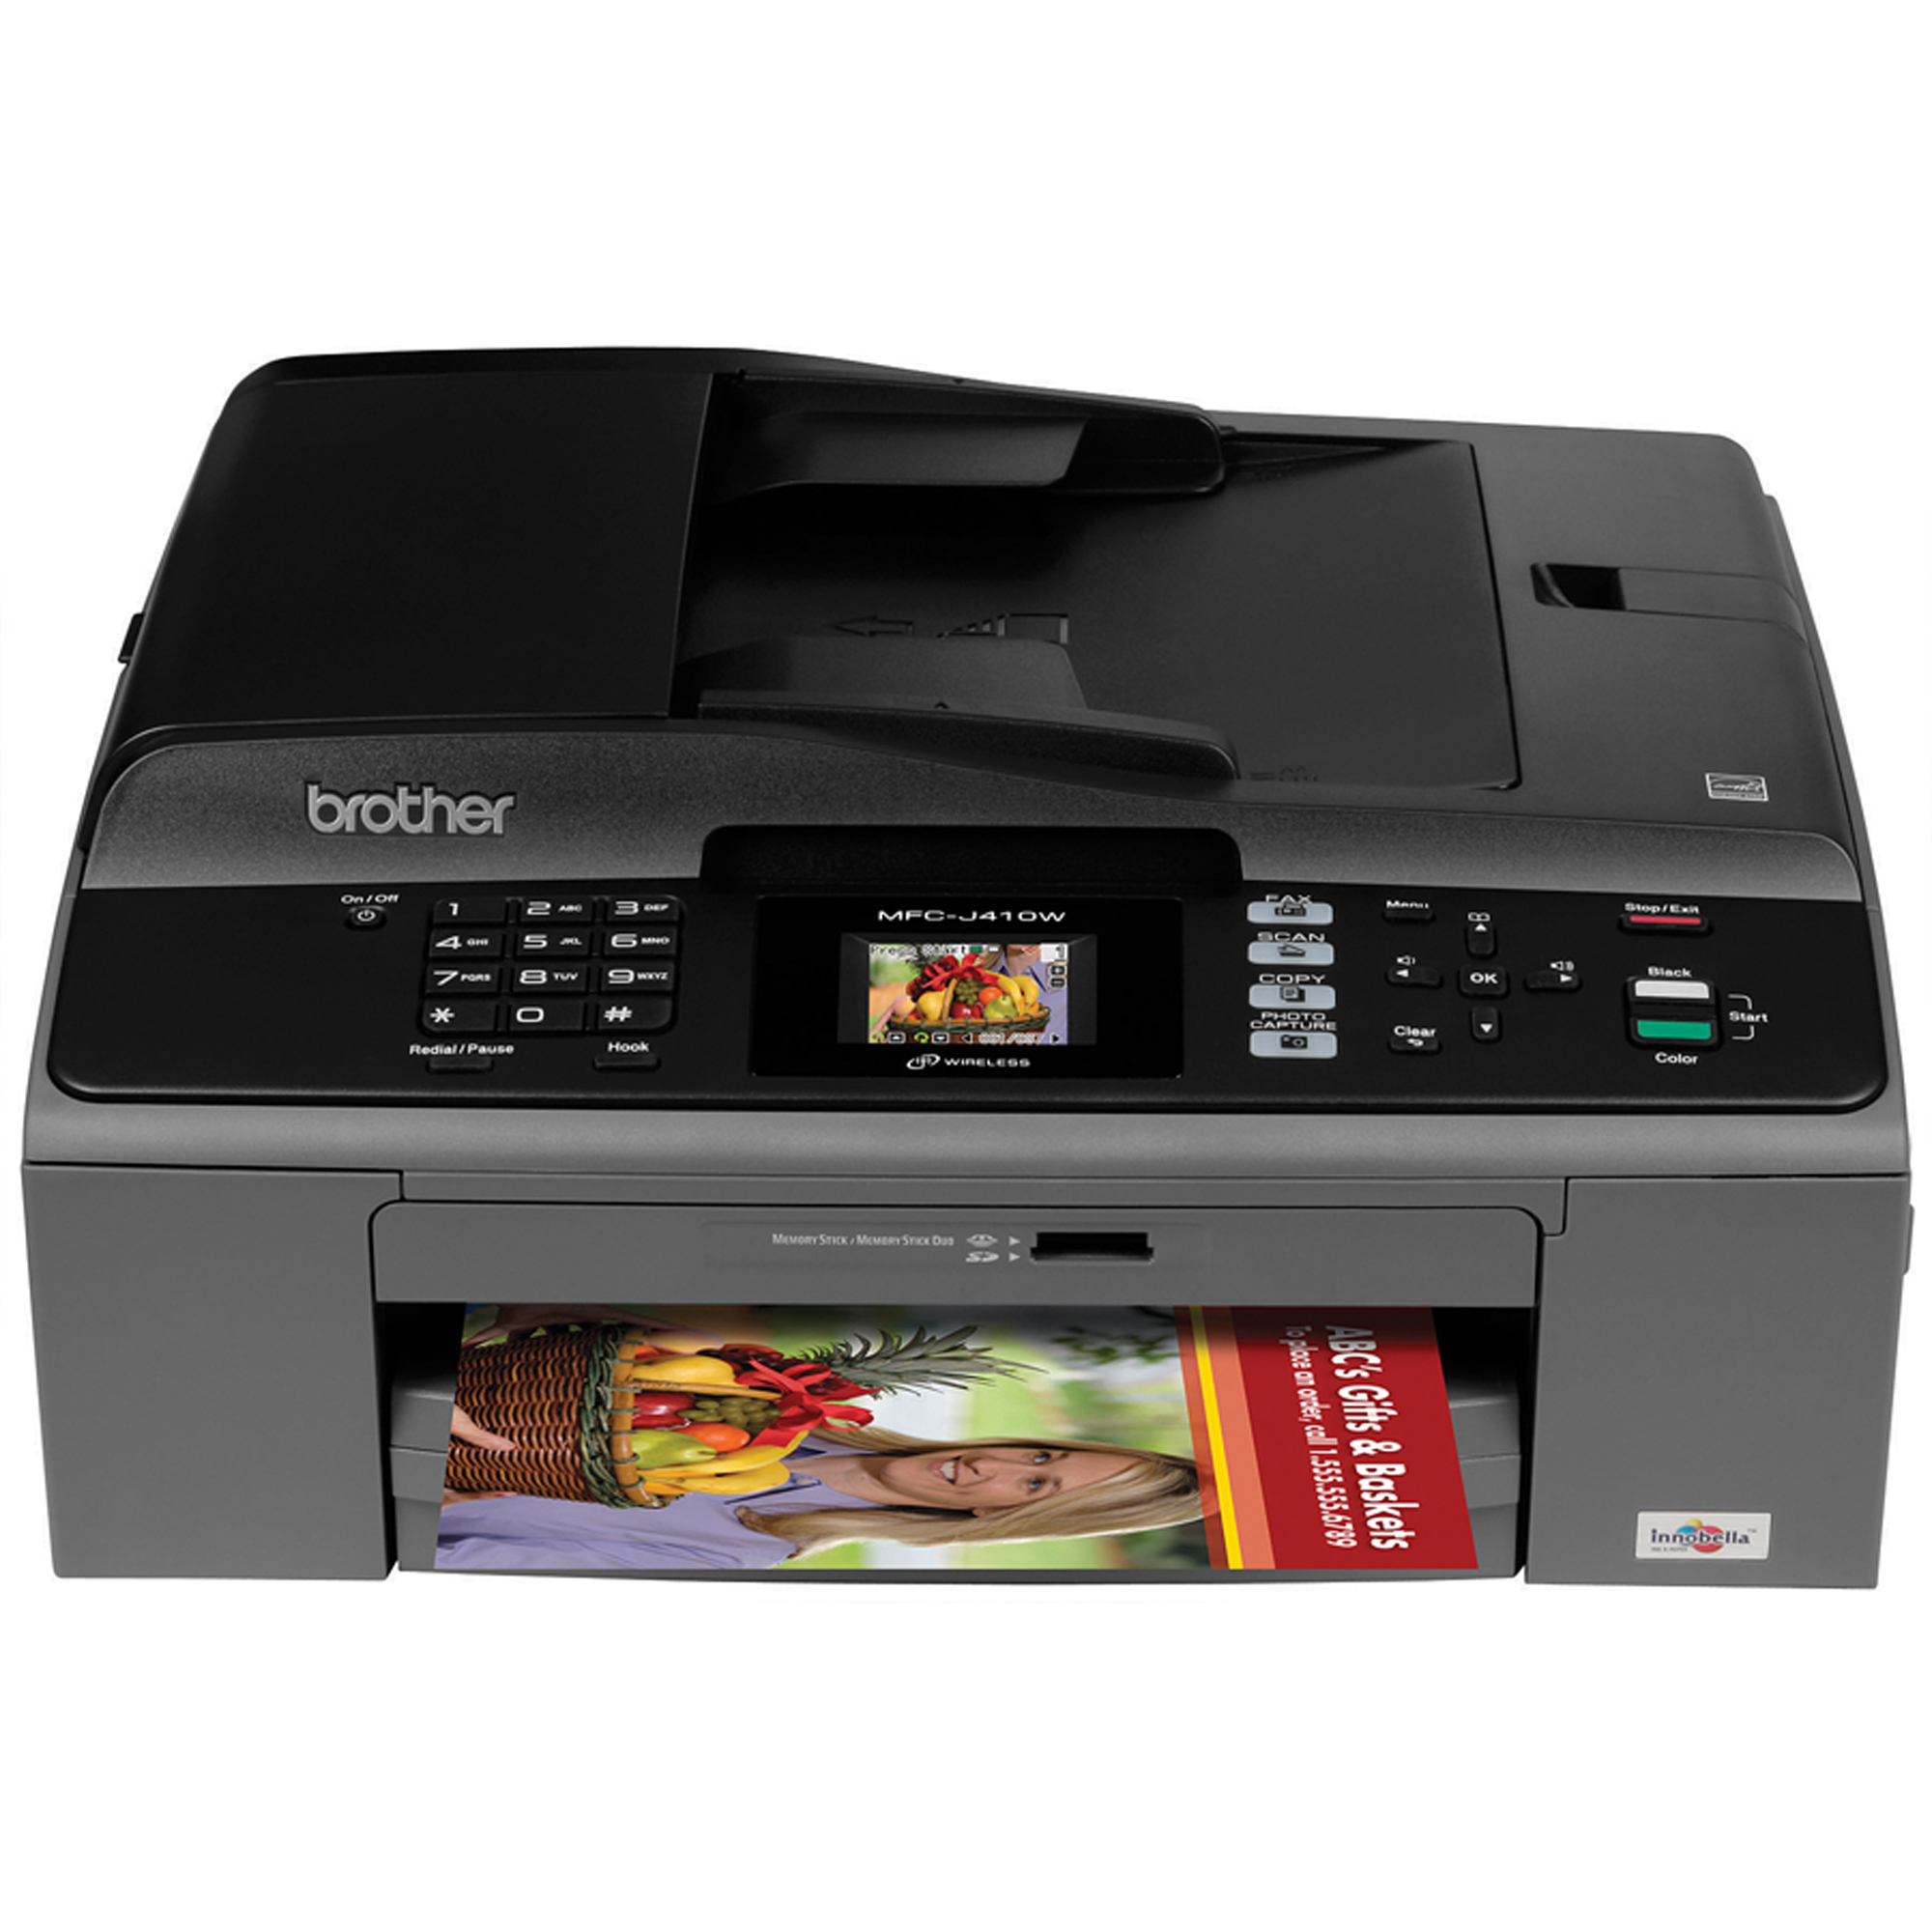 Brother® MFC-J410w Wireless Inkjet All-In-One Printer, Copier, Scanner, Fax